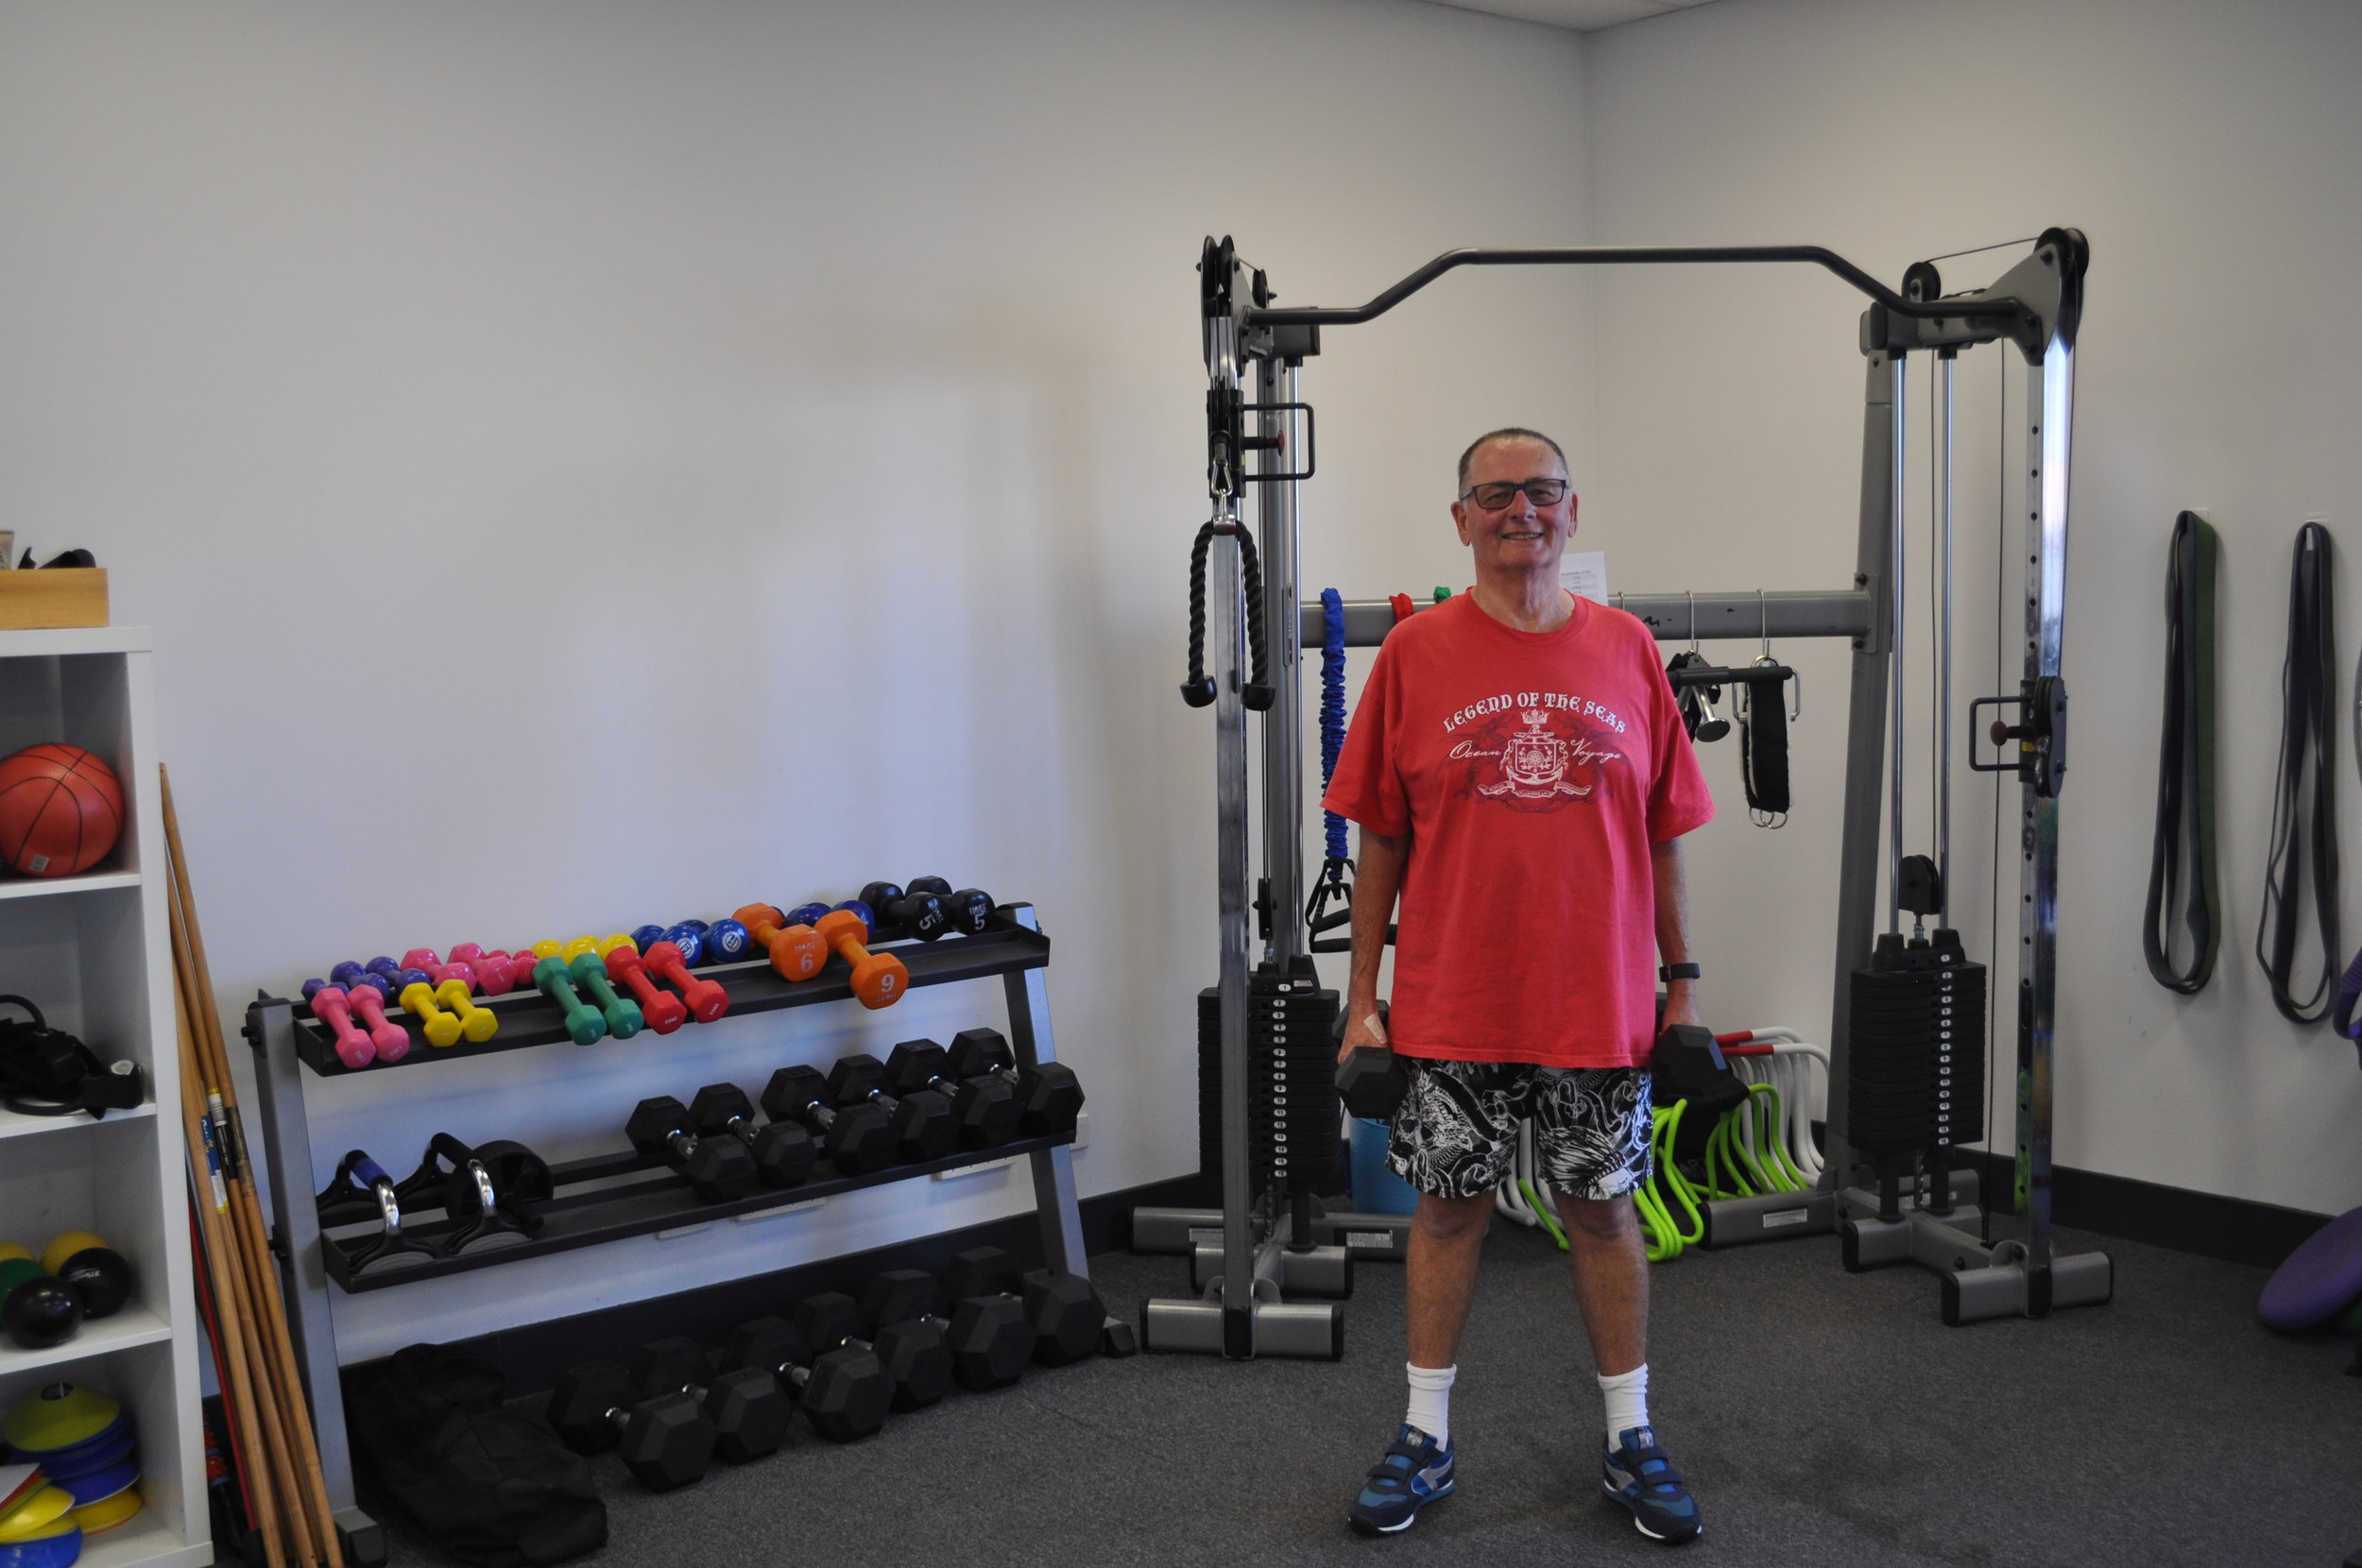 Ken Pritchard - Ken Pritchard commenced at Maximum Results in May 2017 with the goal of losing 32kg. From May 2017 to January 2018, Ken has lost 27.9kg (currently weighing 76.1kg).Ken went through 2 major operations in 2017. 12th of July he had bariatric surgery and 11th of Ocober a total hip replacement.With the professional care of the Exercise Physiologists at Maximum Results, Ken exercises three times a week with constant reviewing of his program. Not only does Ken exercise at the gym, but he's also involved in the Bunbury Over 40 Cycle Club, riding up to 10km-40km 4 times a week.